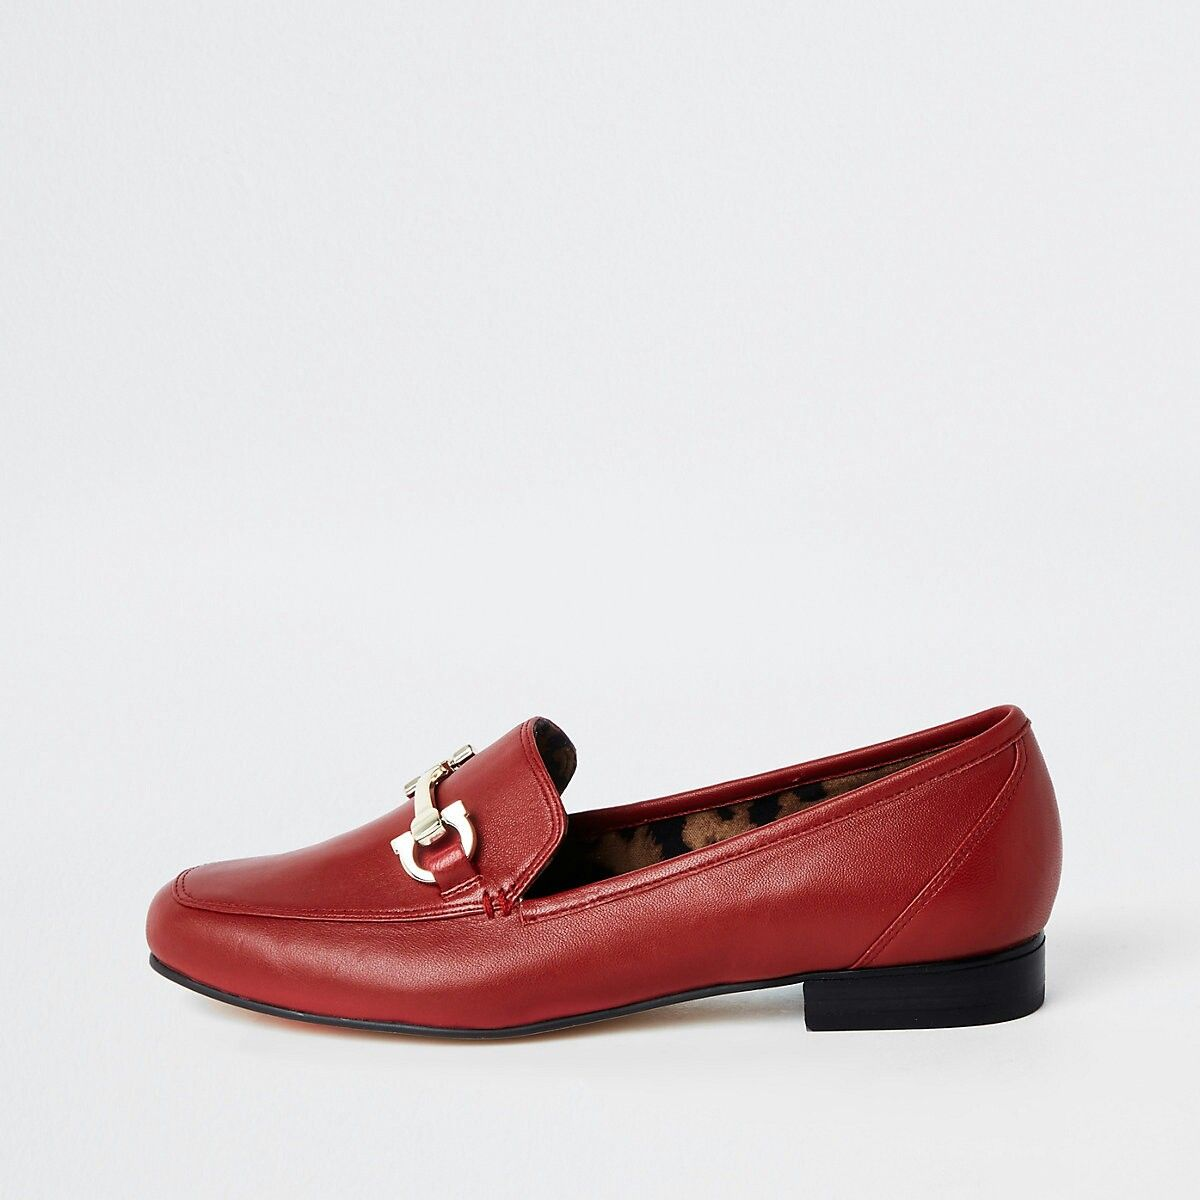 aba9e64a8a0d Red leather snaffle loafers | Loafers | Loafers, Loafer shoes, Shoe ...